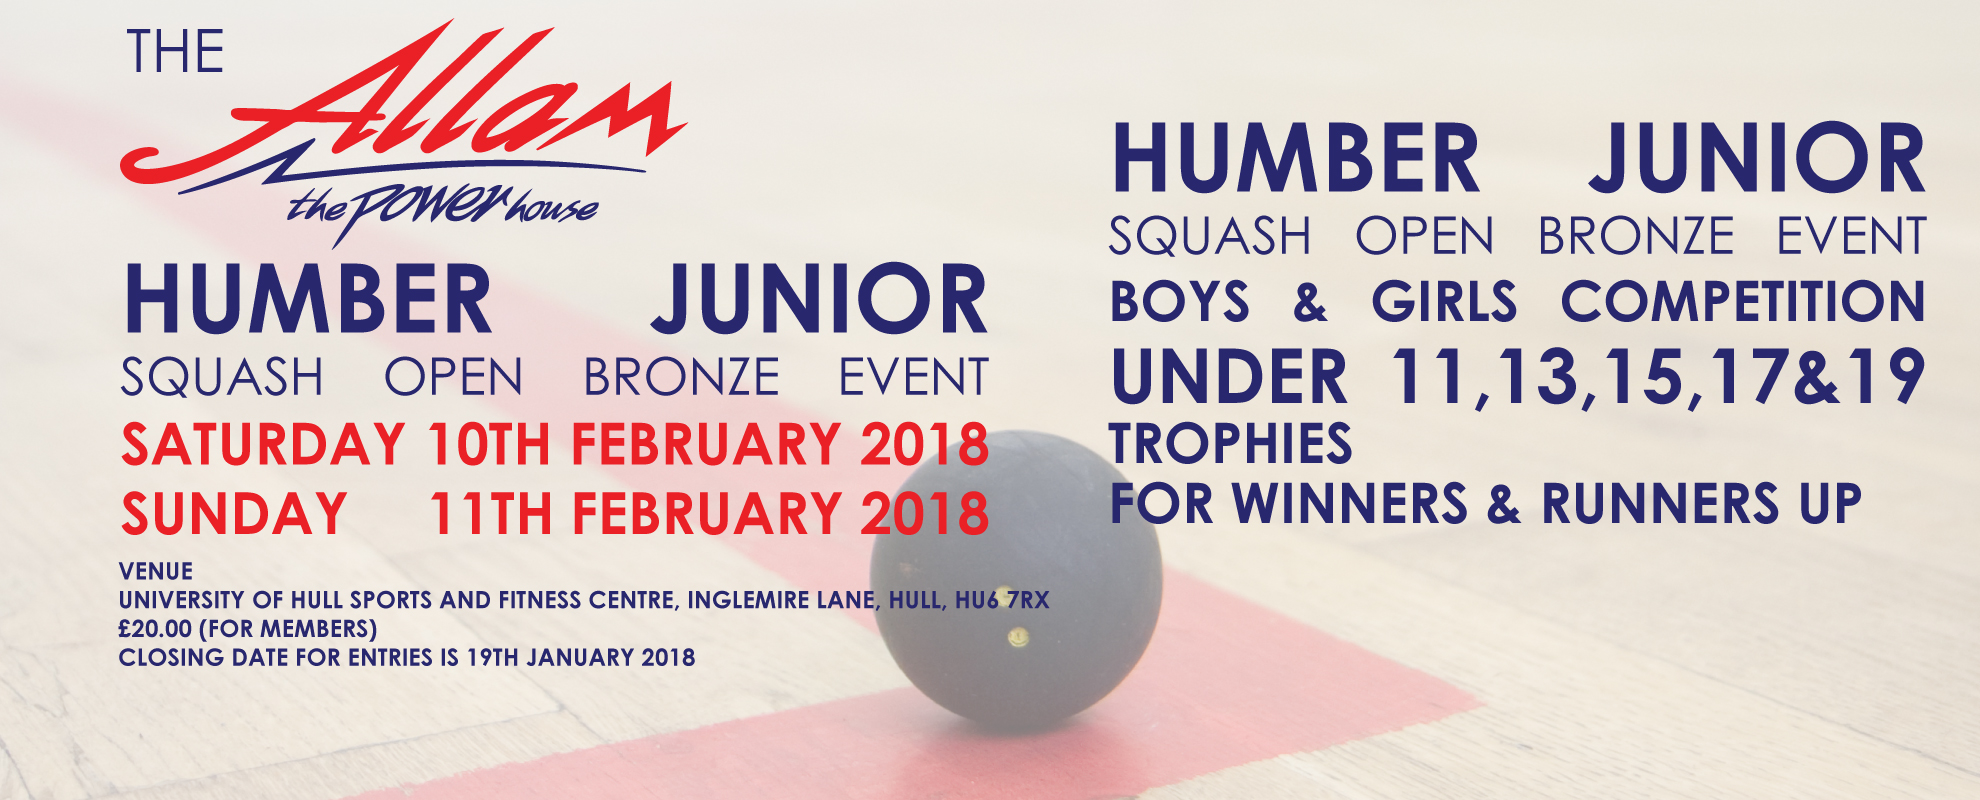 ALLAM HUMBER JUNIOR SQUASH OPEN BRONZE EVENT 2018 - CLICK HERE FOR REVISED DRAWS